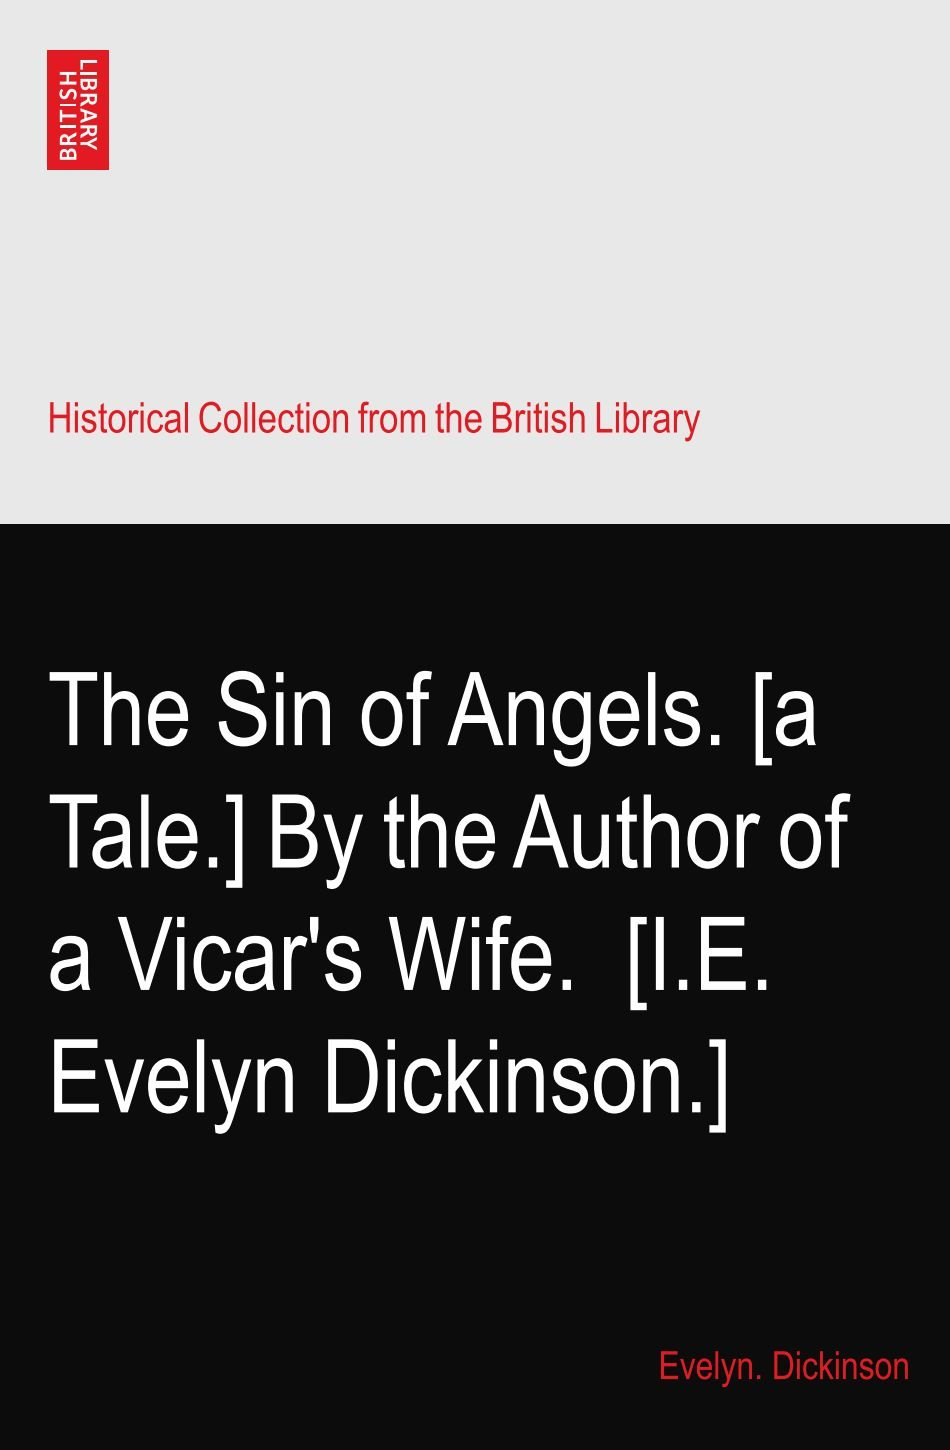 Read Online The Sin of Angels. [a Tale.] By the Author of a Vicar's Wife.? [I.E. Evelyn Dickinson.] pdf epub